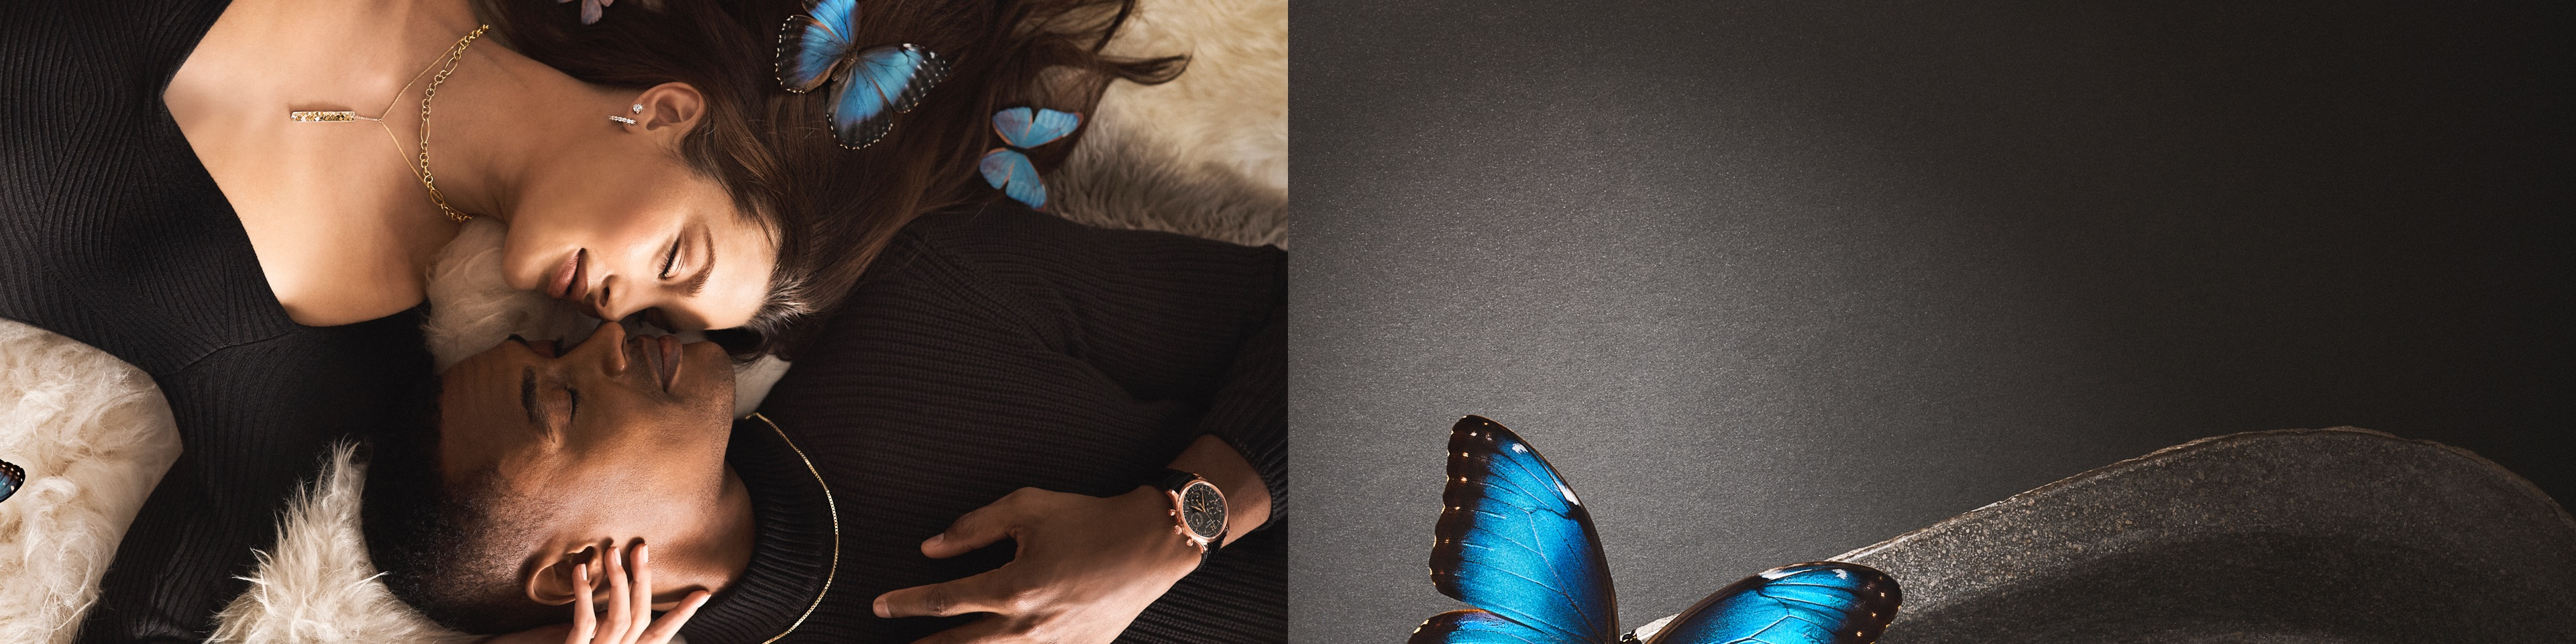 Image of a couple snuggled close together wearing jewelry from Jared on a grey textured background and a blue morpho butterfly.